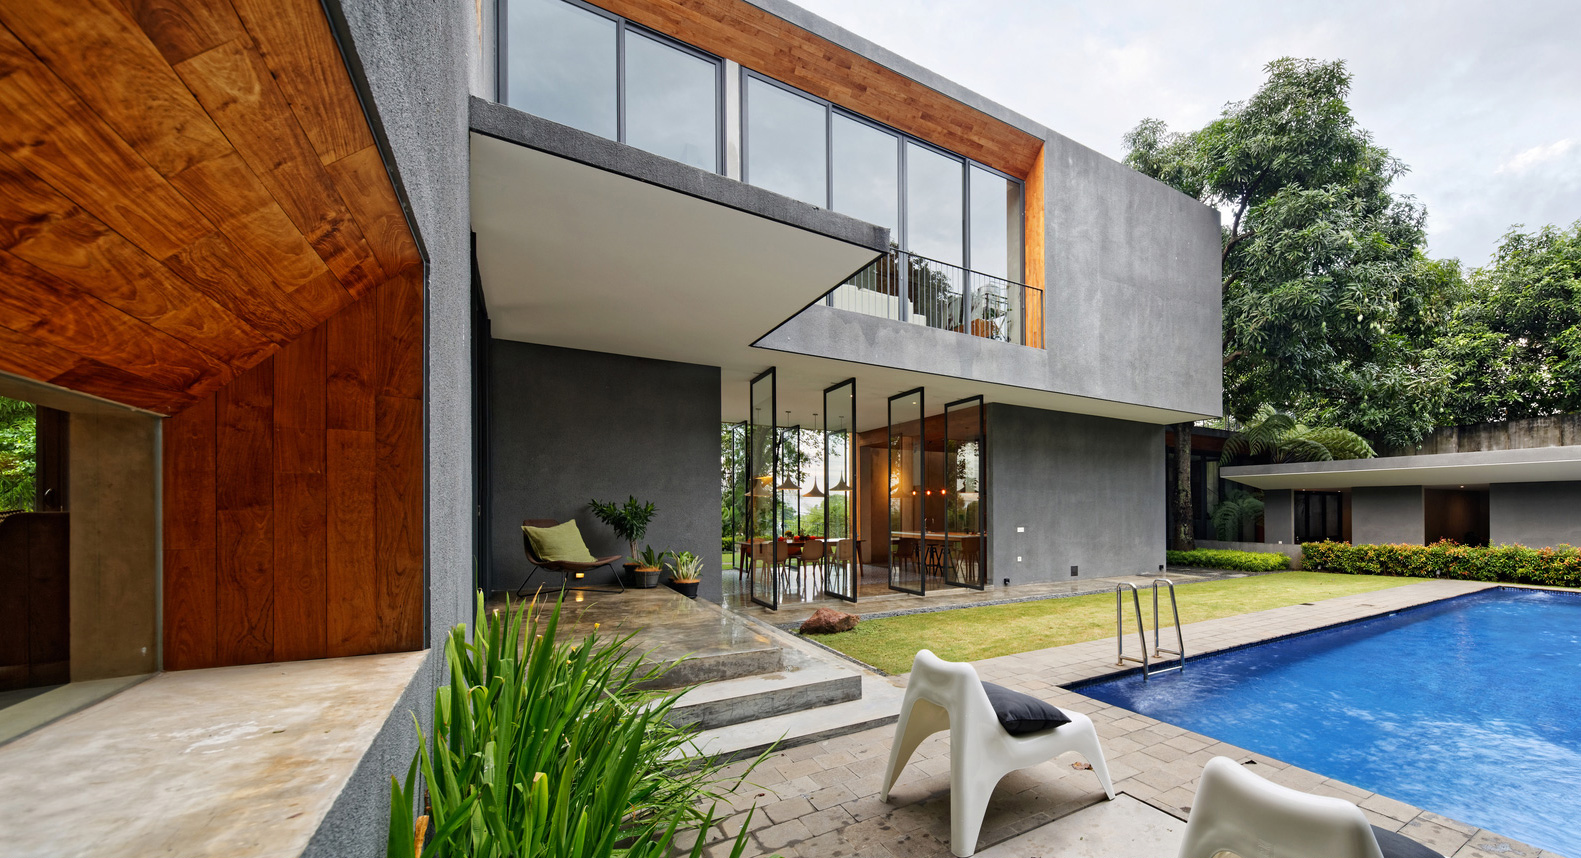 How A Mango Tree Inspired The Spectacular Inside Outside House ... Outside Of House Interior Design on outside front entry design, outside bathroom design, outside kitchen design, outside windows design, outside wedding design, outside floor design, outside garage design, outside door design, outside house design, outside basement design,